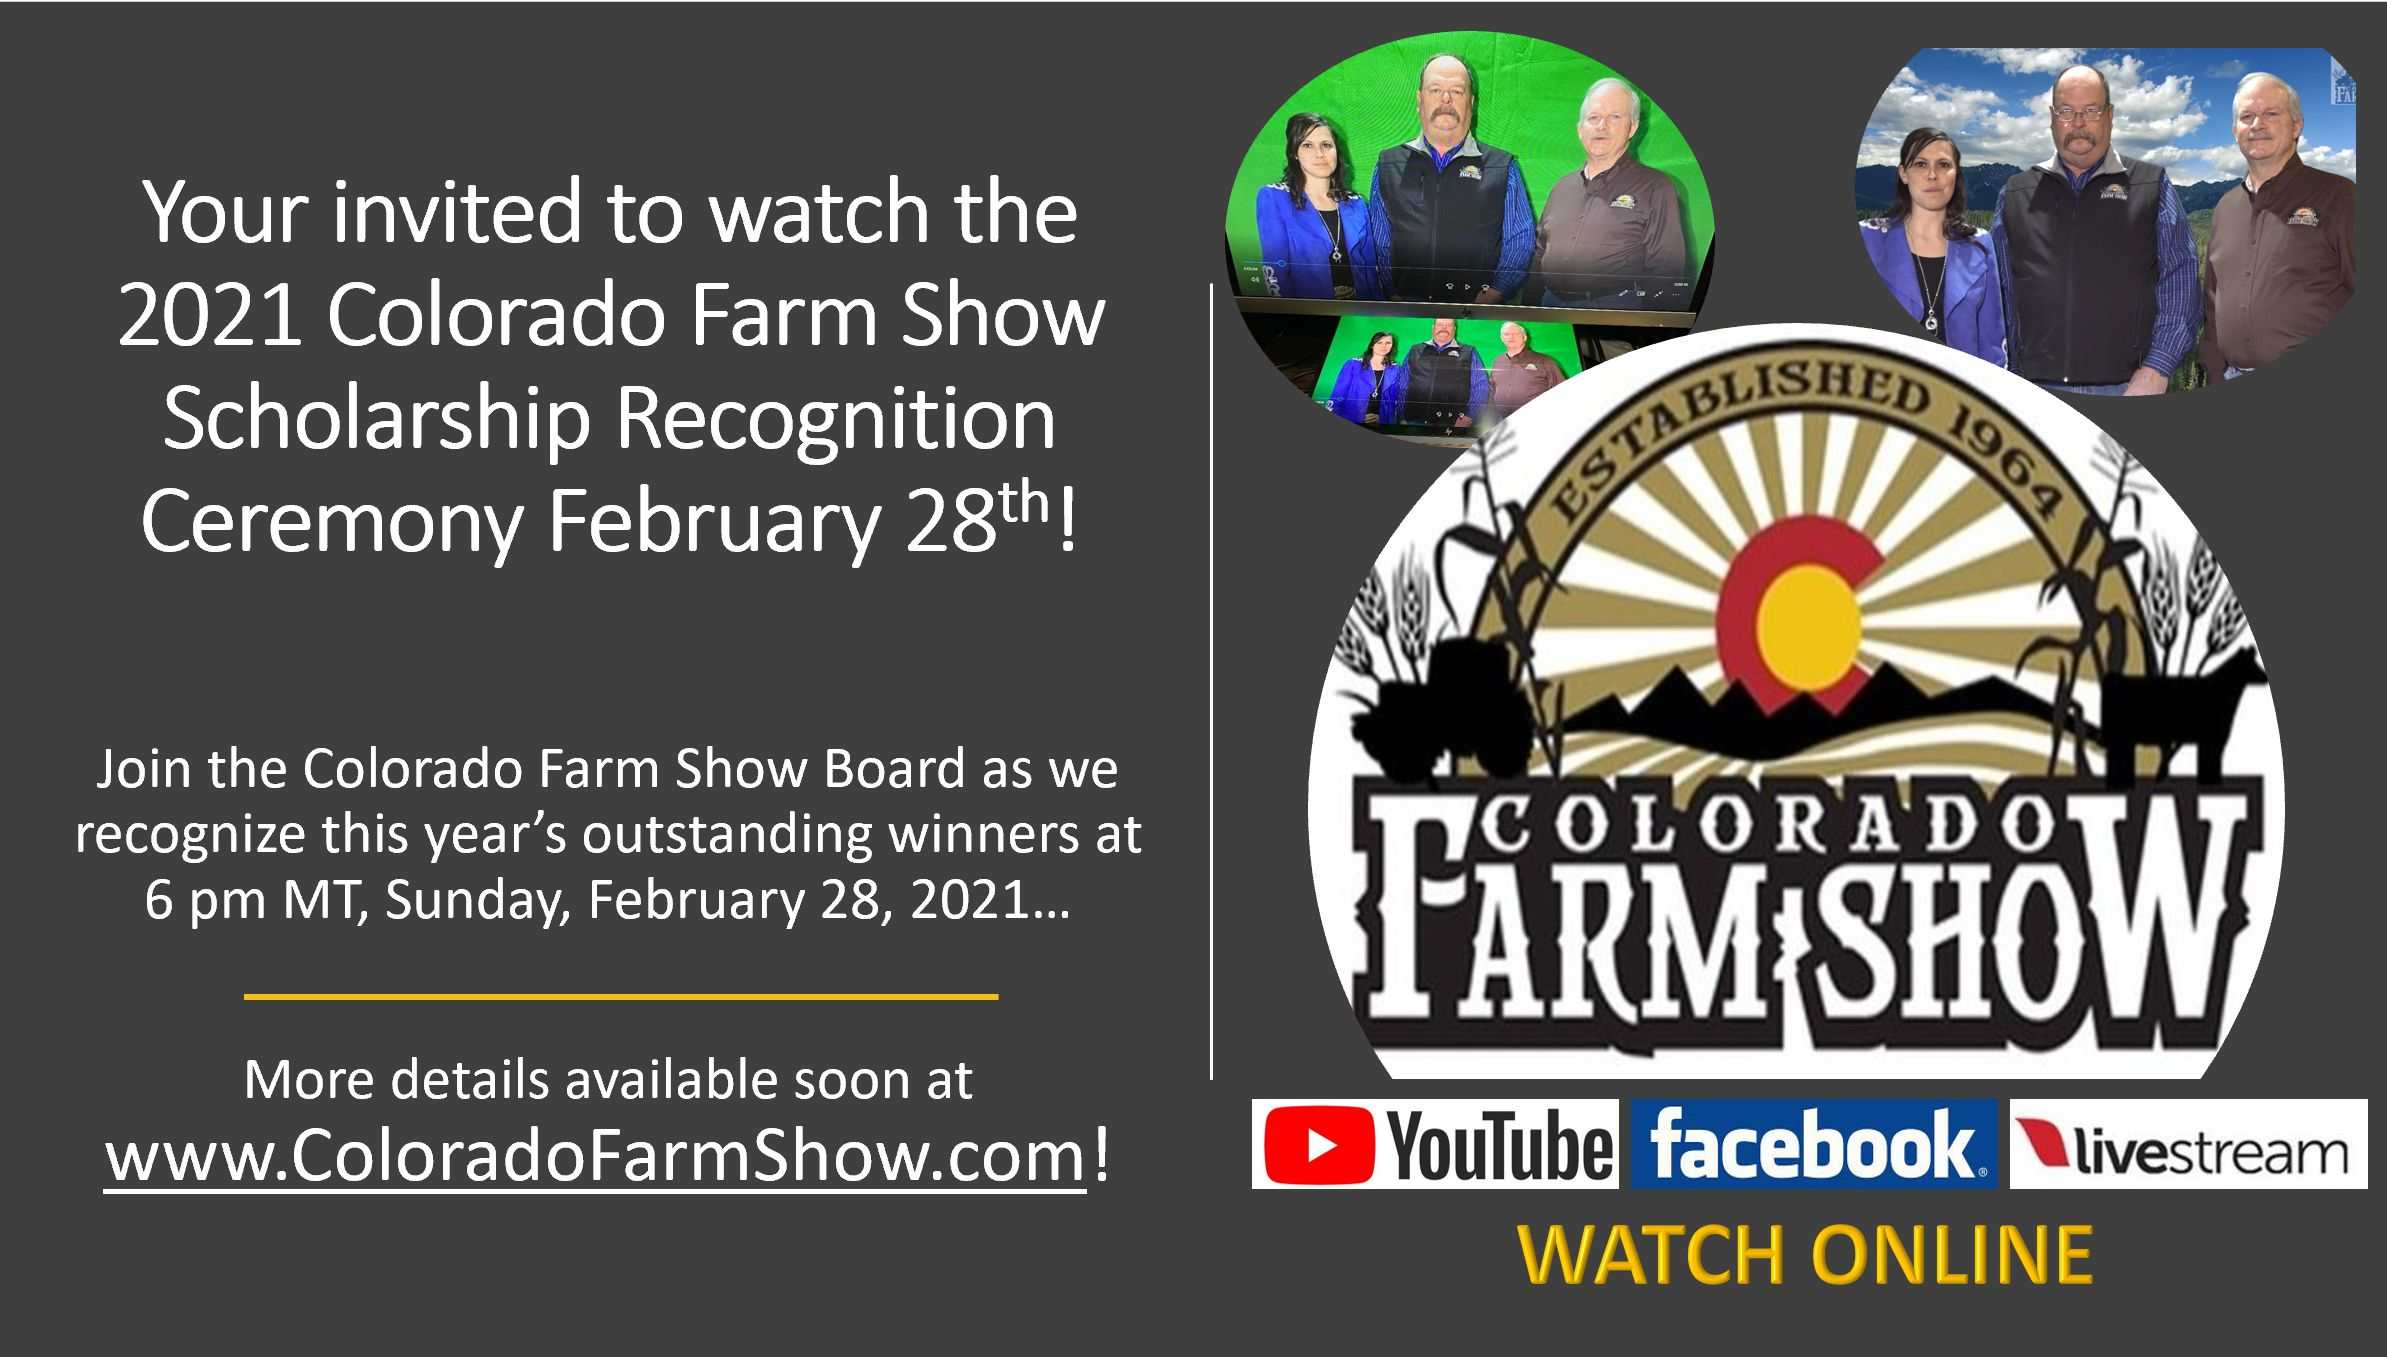 Watch the 2021 Colorado Farm Show Scholarship Recognition Webcast on Sunday, February 28th @ 6 pm MT!